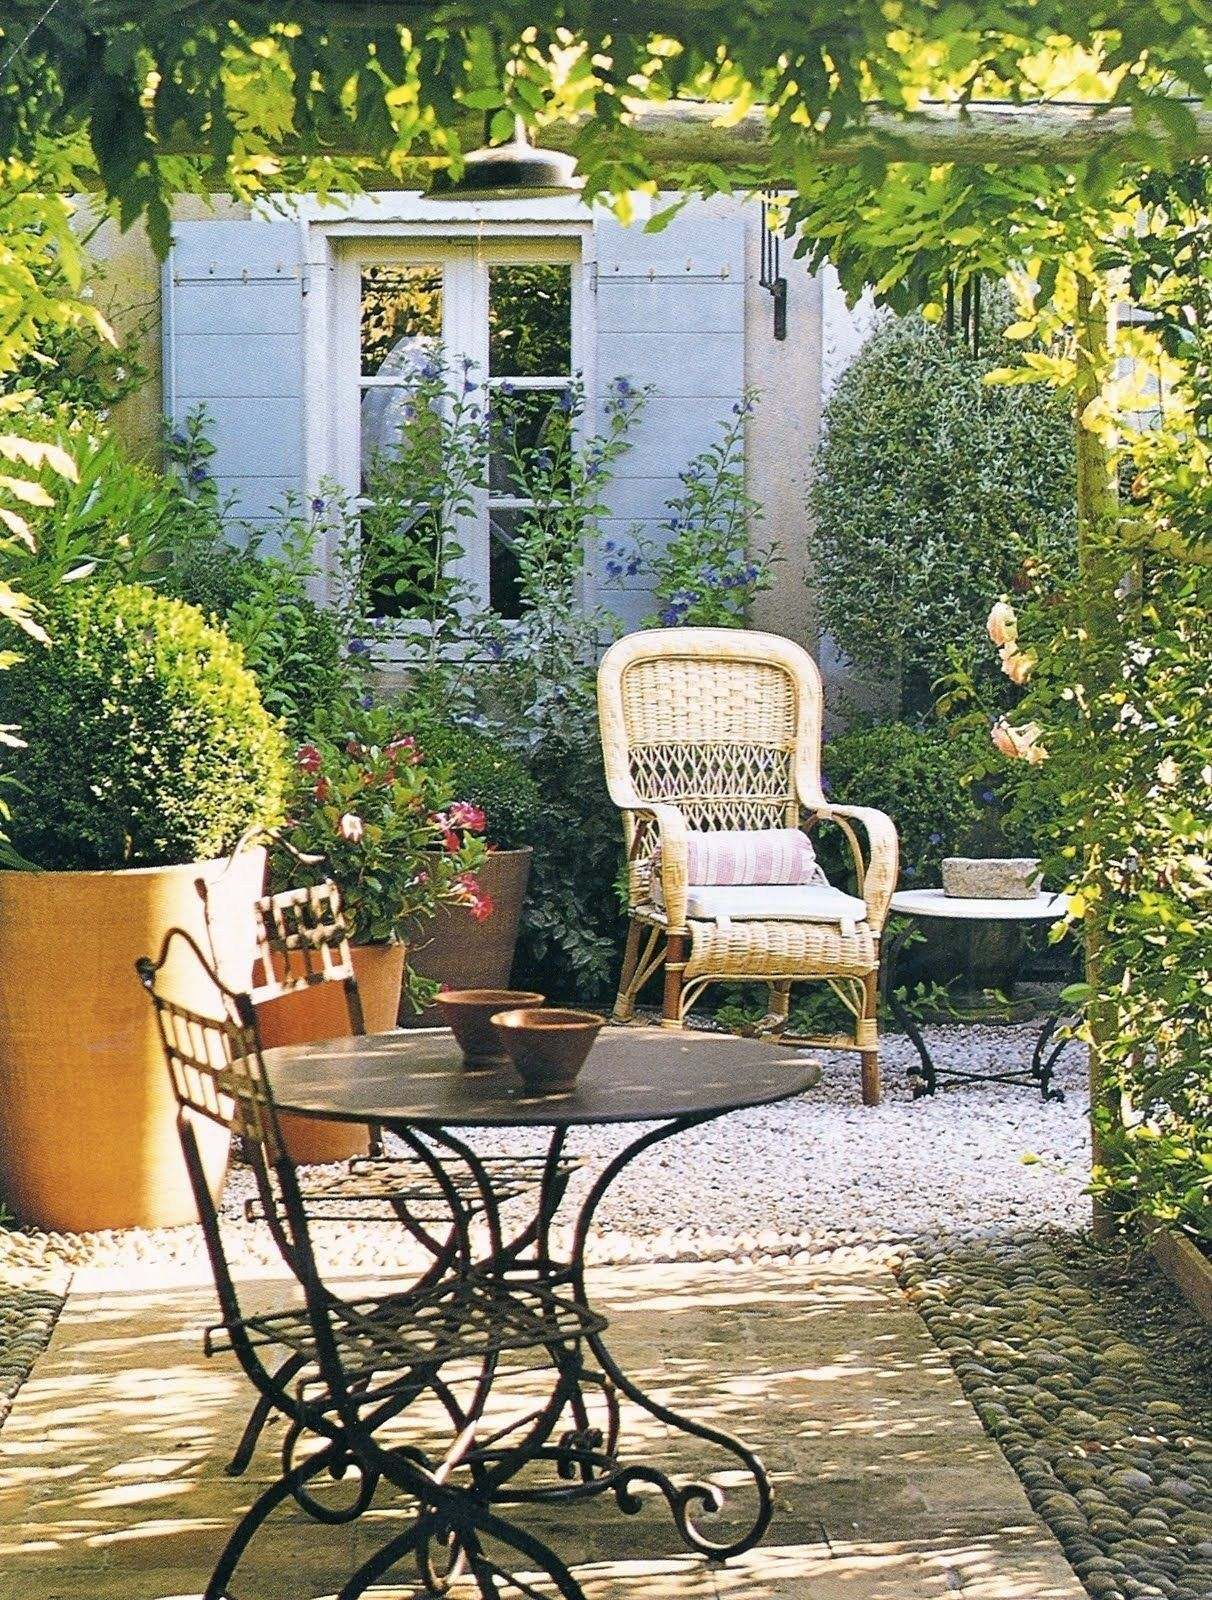 42 A Cozy Backyard France Terrace Ideas